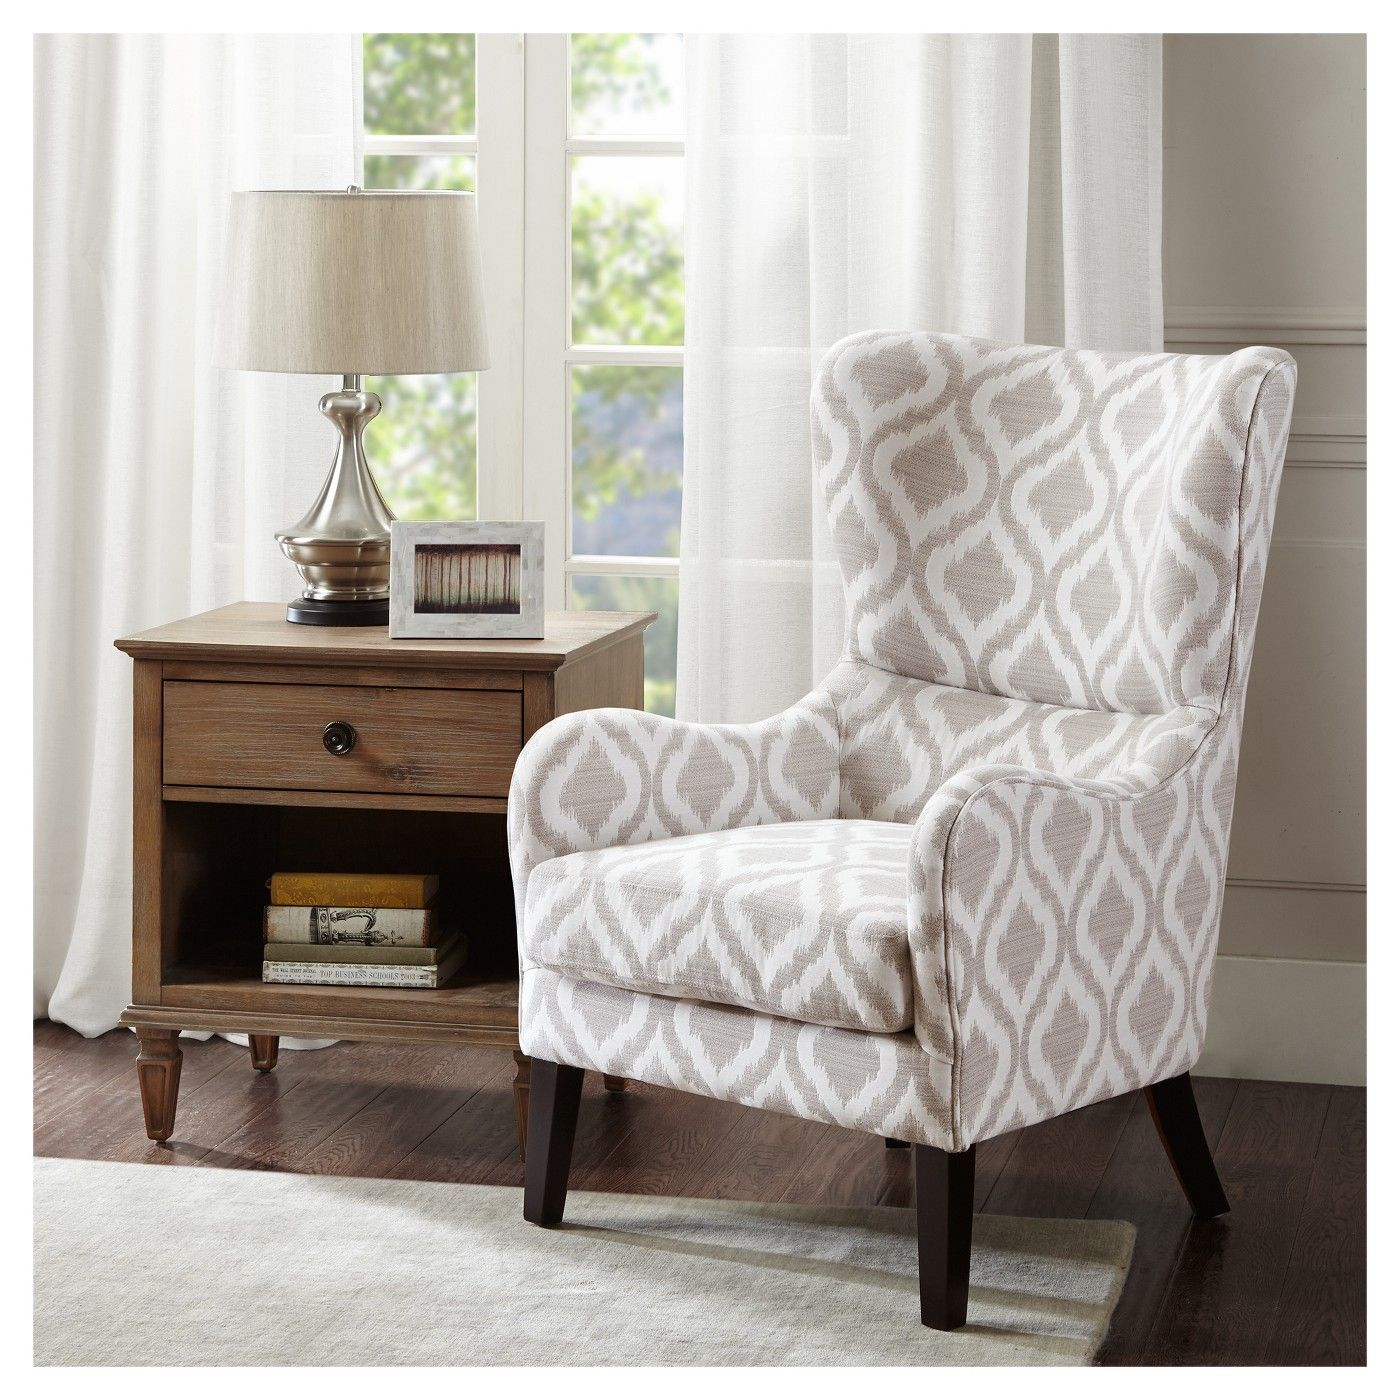 Merveilleux Cozy Chairs   Swoop Wingback Arm Chair